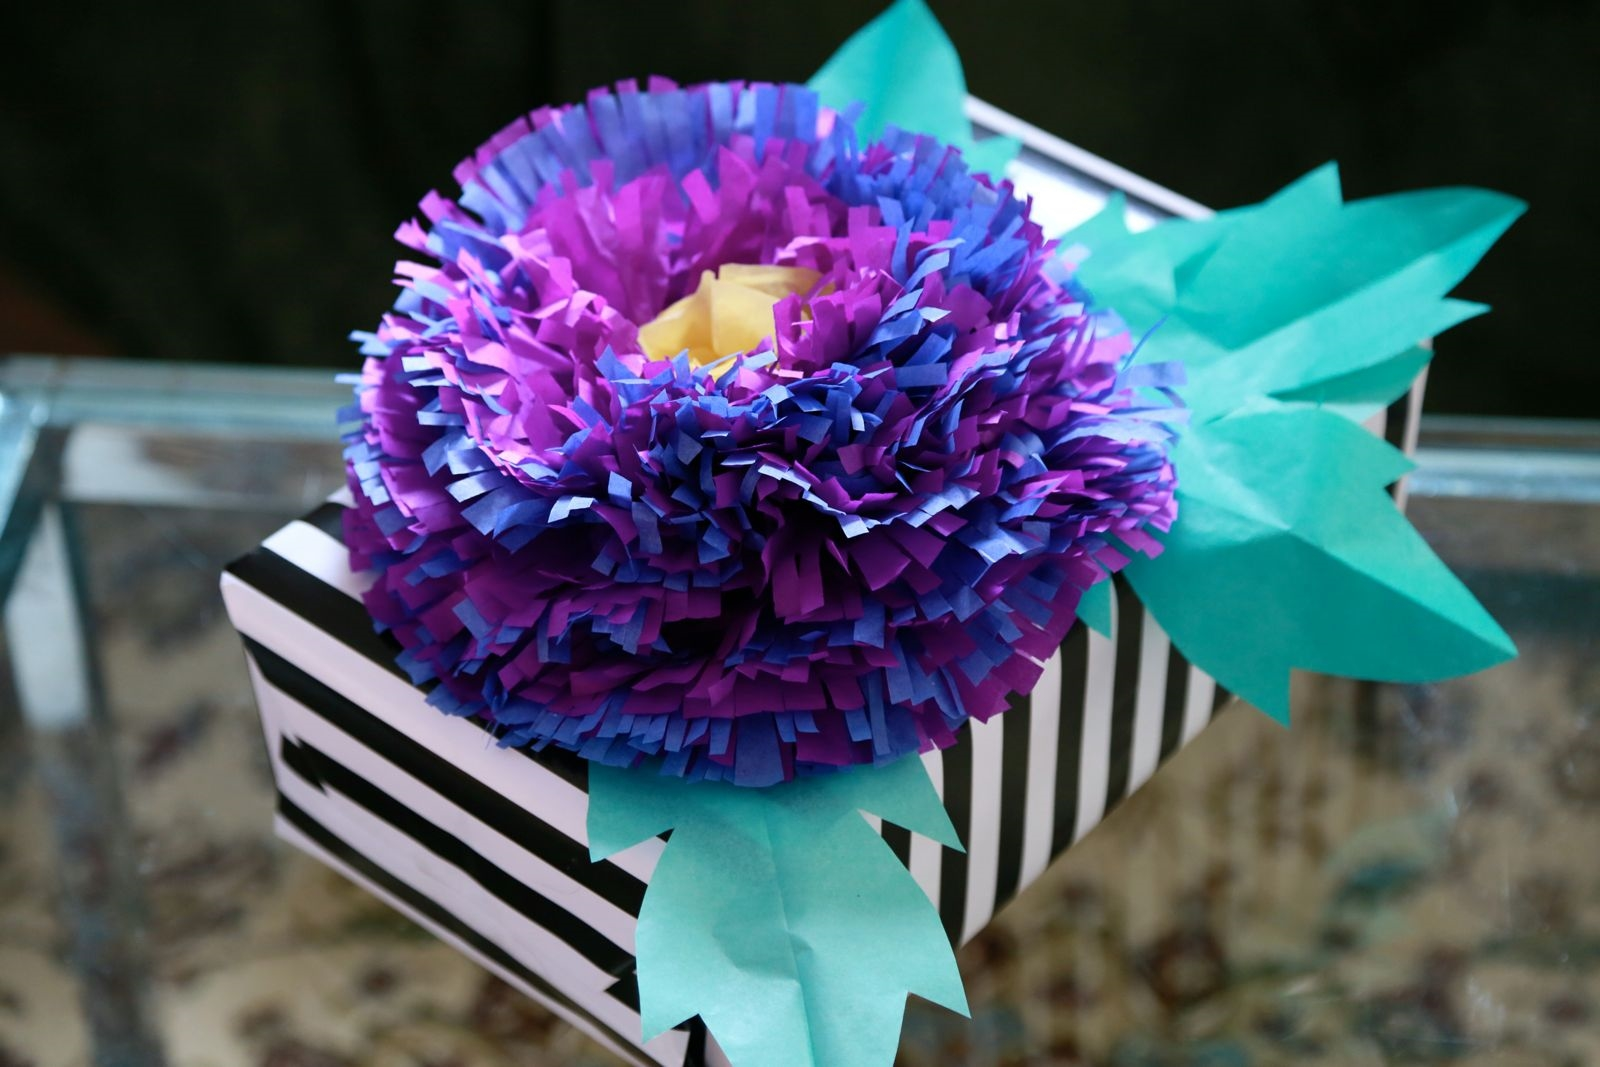 Fringed tissue paper flower decoration for Decorative flowers for crafts